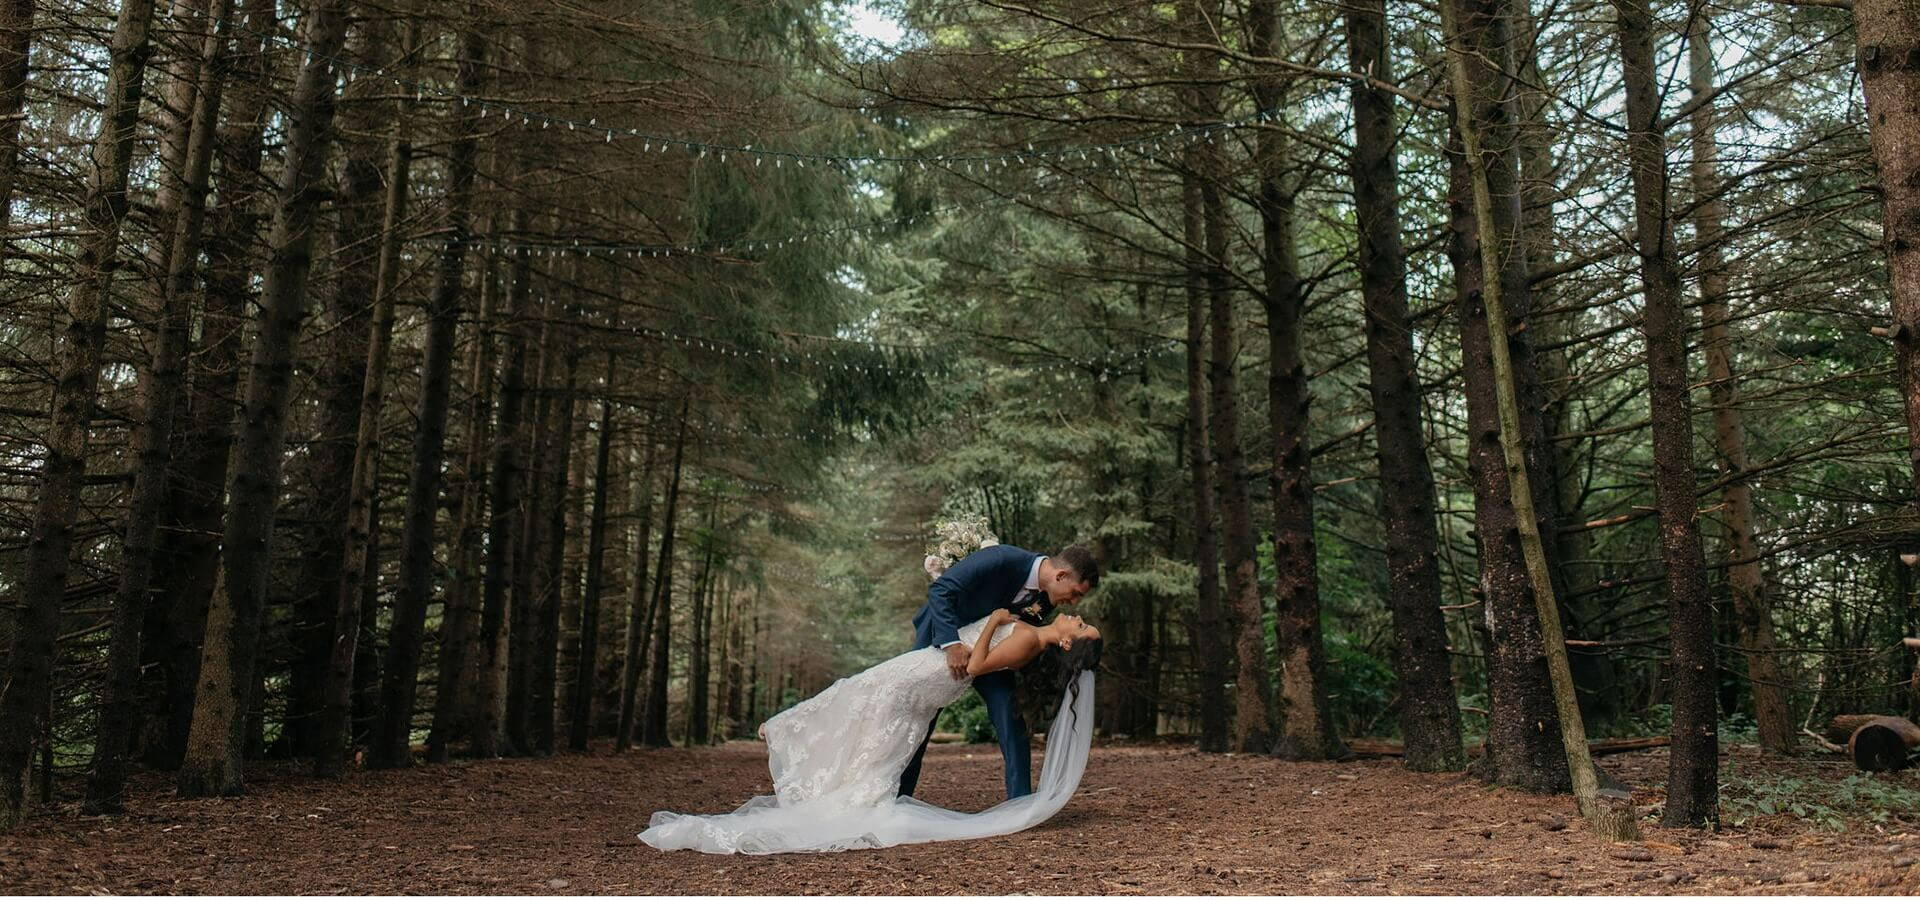 Hero image for Andrea and Erik's Elegant Wedding at King's Riding Golf Club